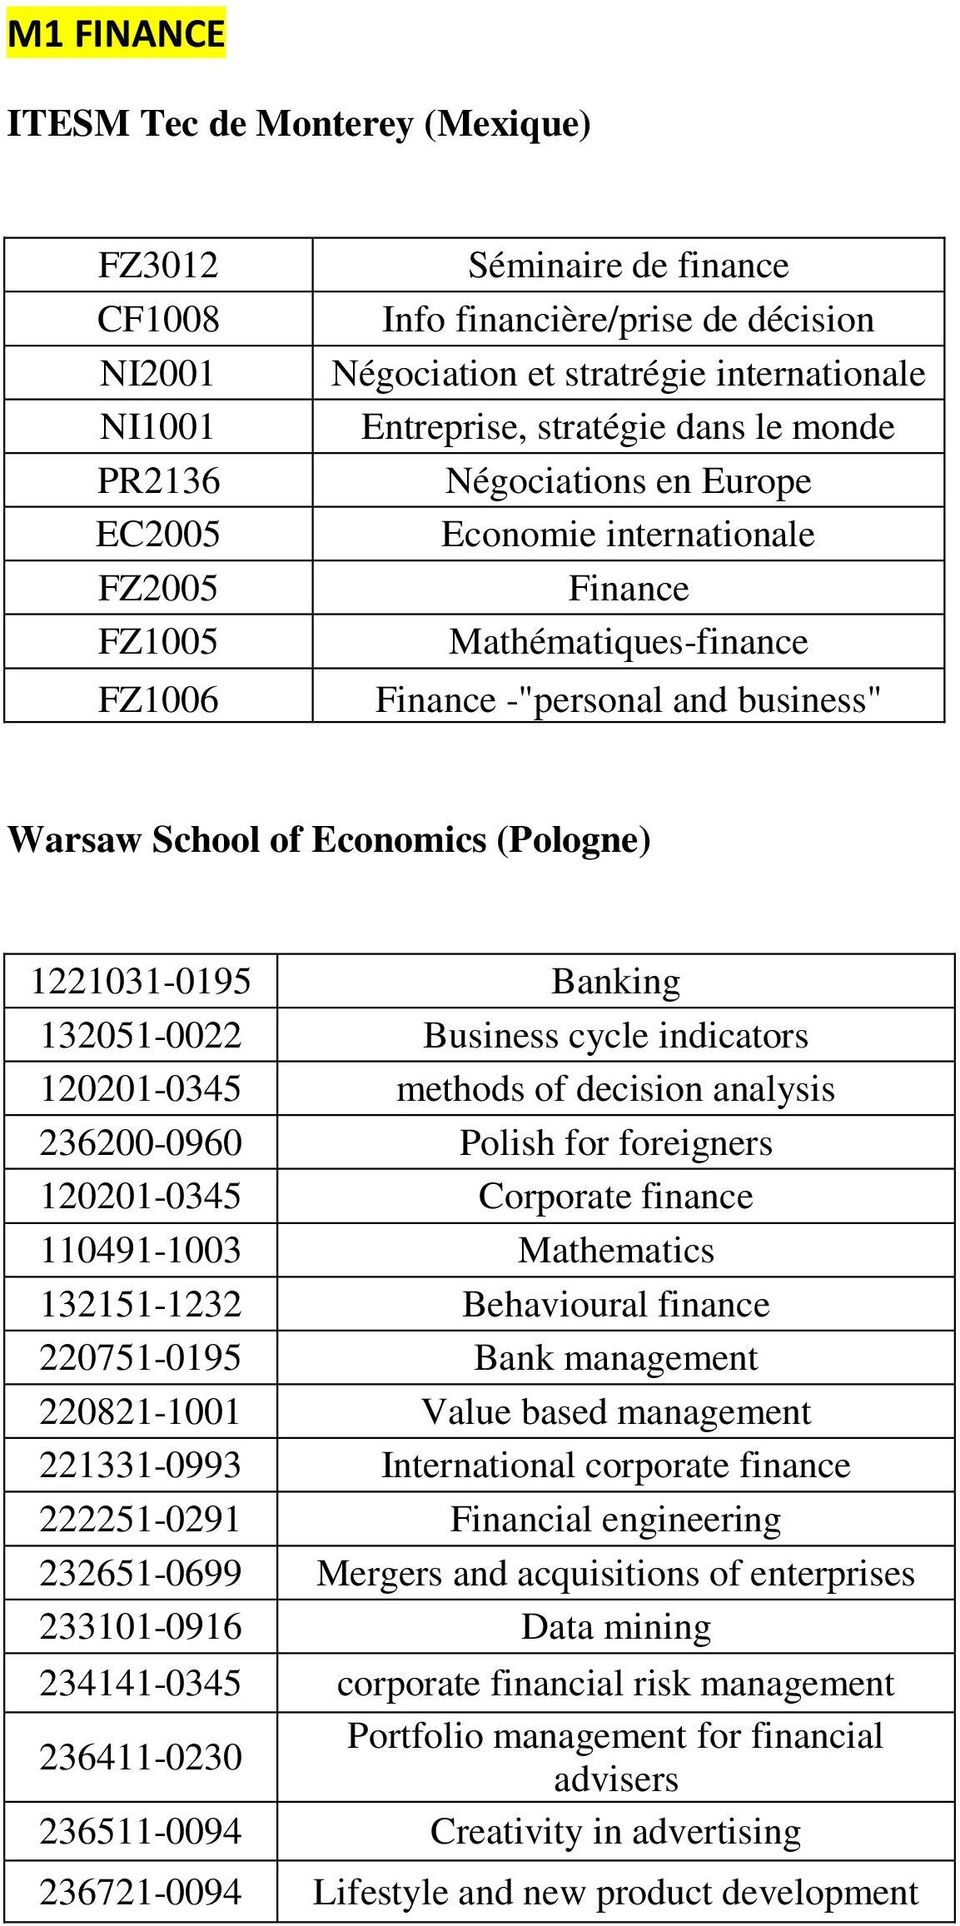 1221031-0195 Banking 132051-0022 Business cycle indicators 120201-0345 methods of decision analysis 236200-0960 Polish for foreigners 120201-0345 Corporate finance 110491-1003 Mathematics 132151-1232